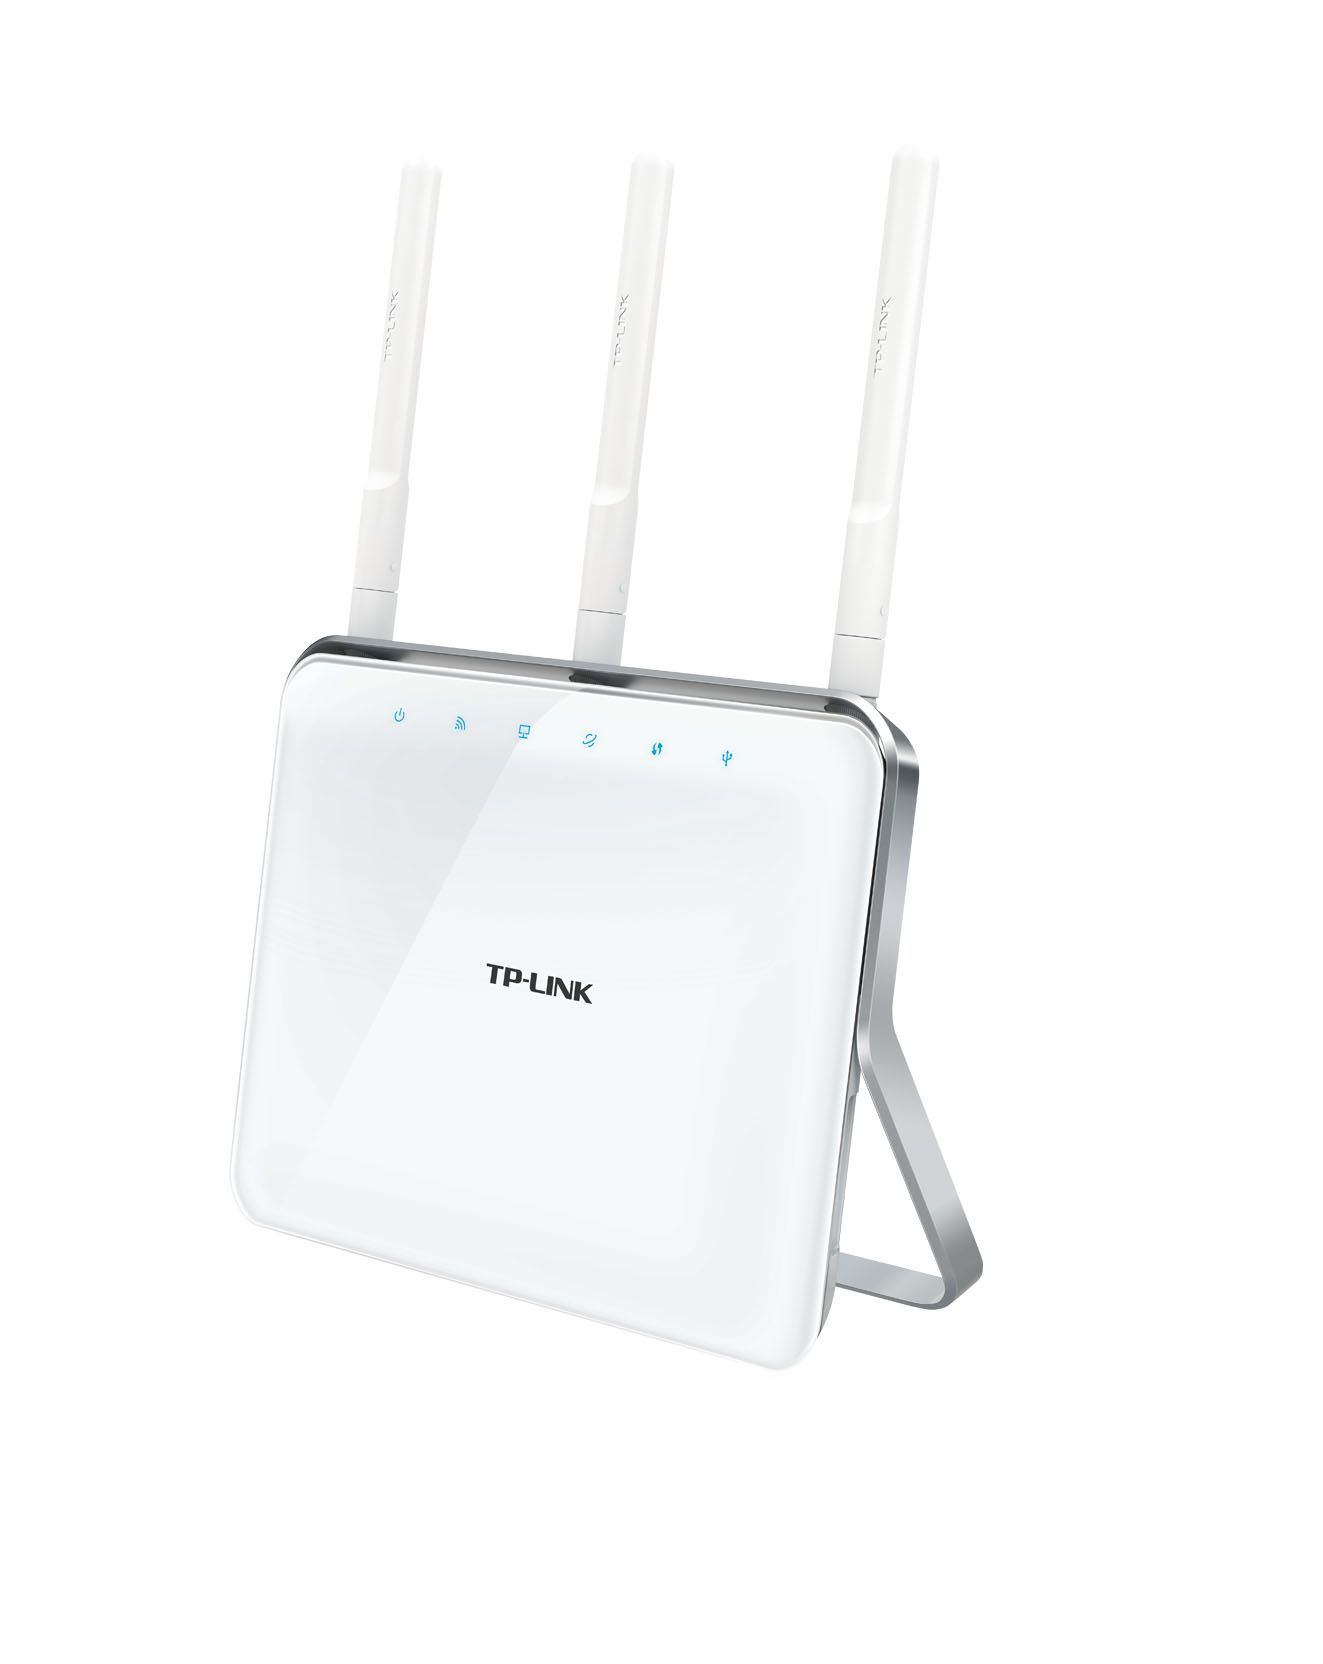 TP-LINK Archer AC1900 - coming in 2014